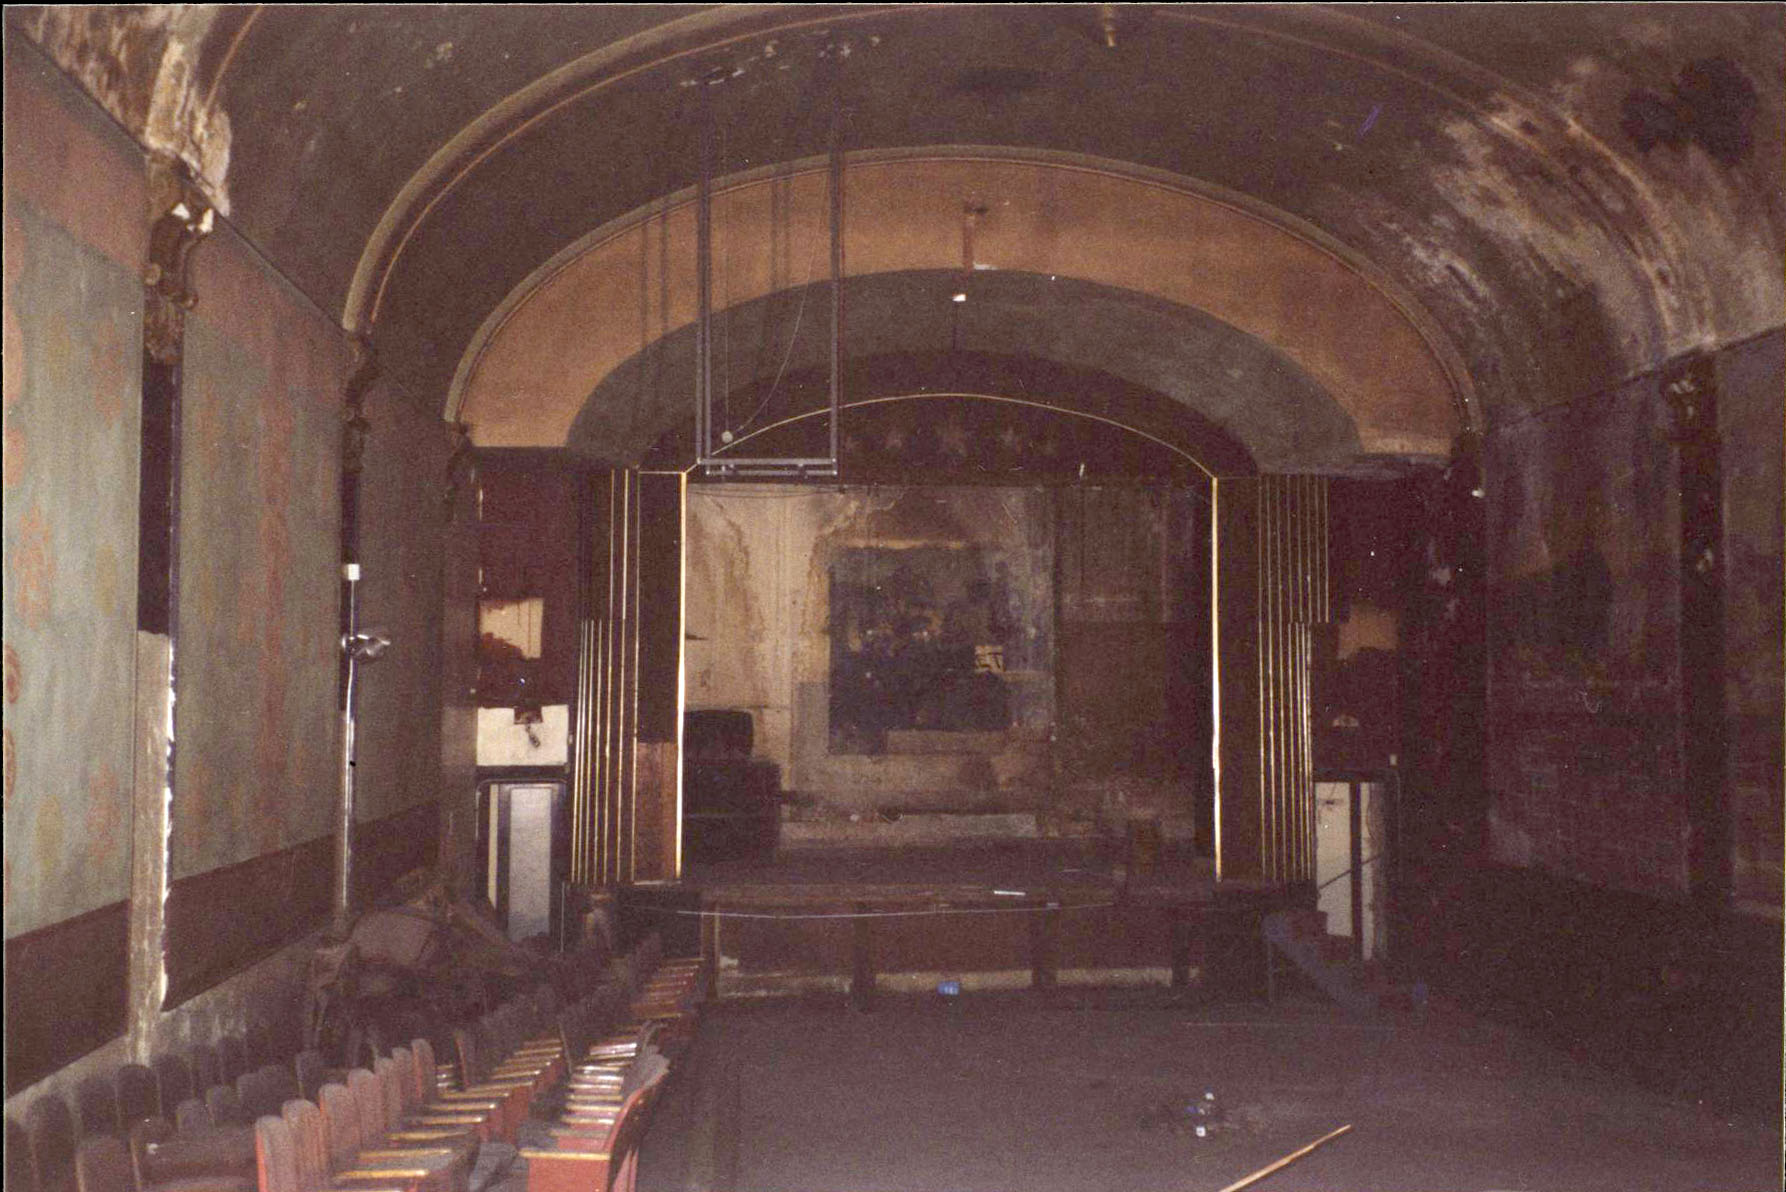 Star Theater, NW 6th between Couch and Burnside, before it was restored and opened as a music venue